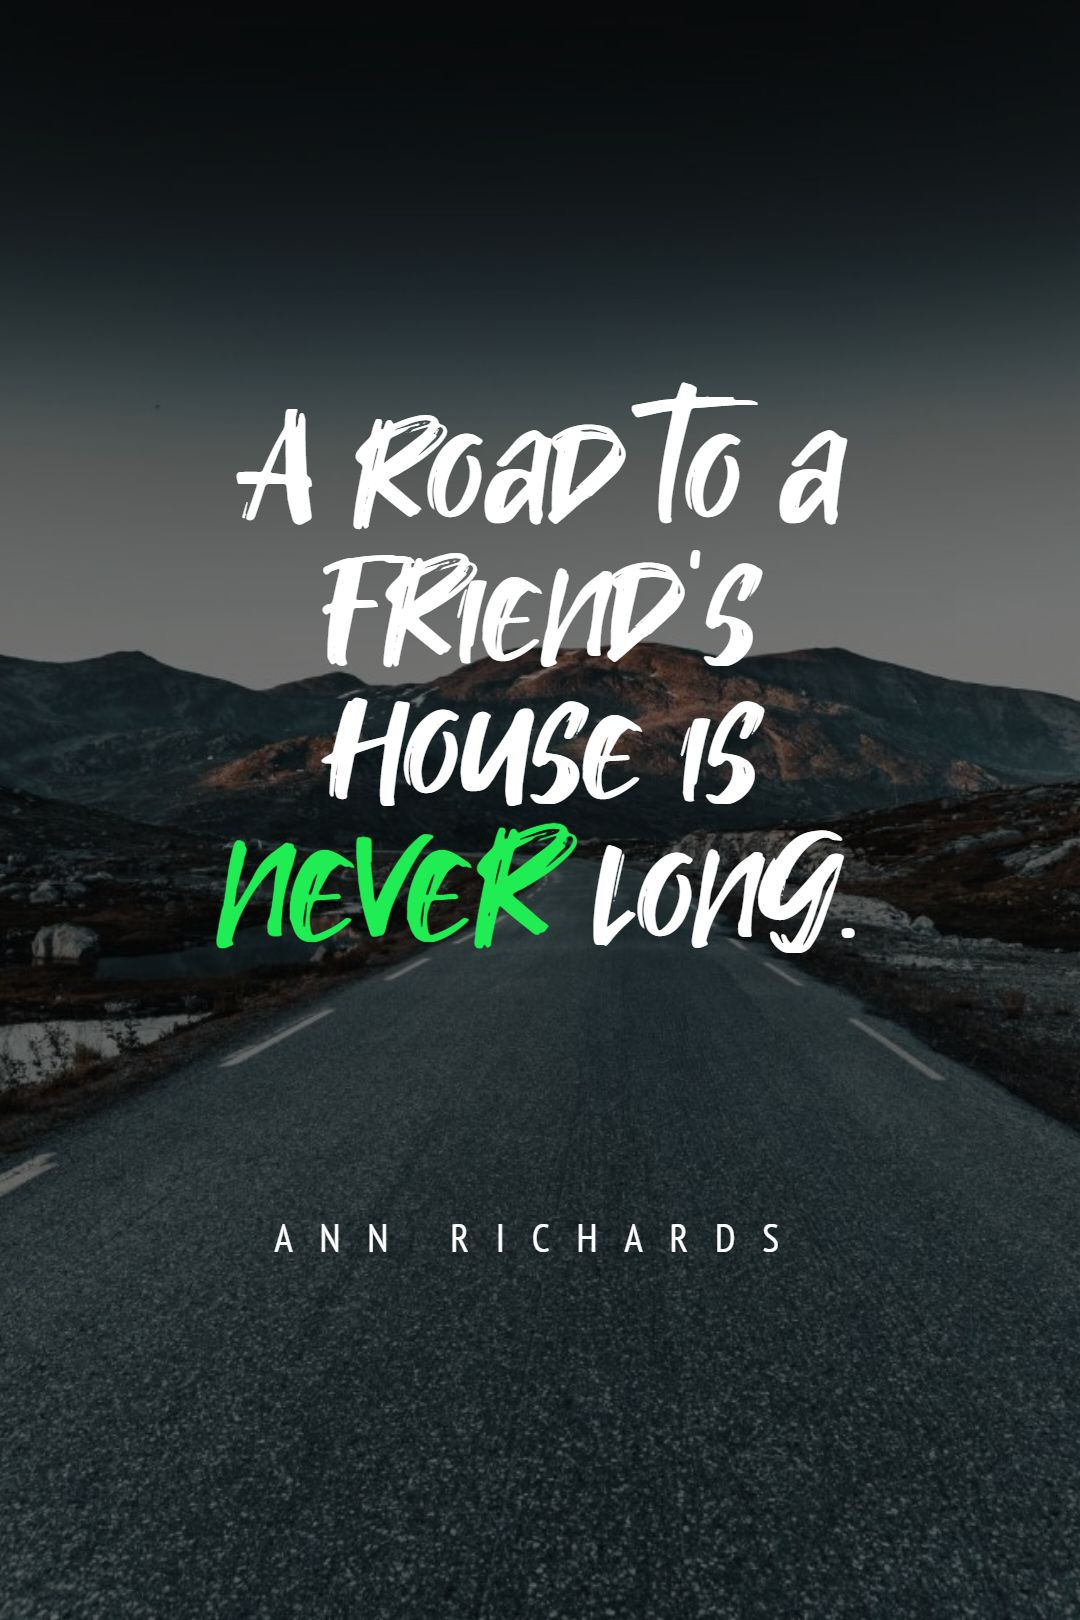 Quotes image of A road to a friend's house is never long.